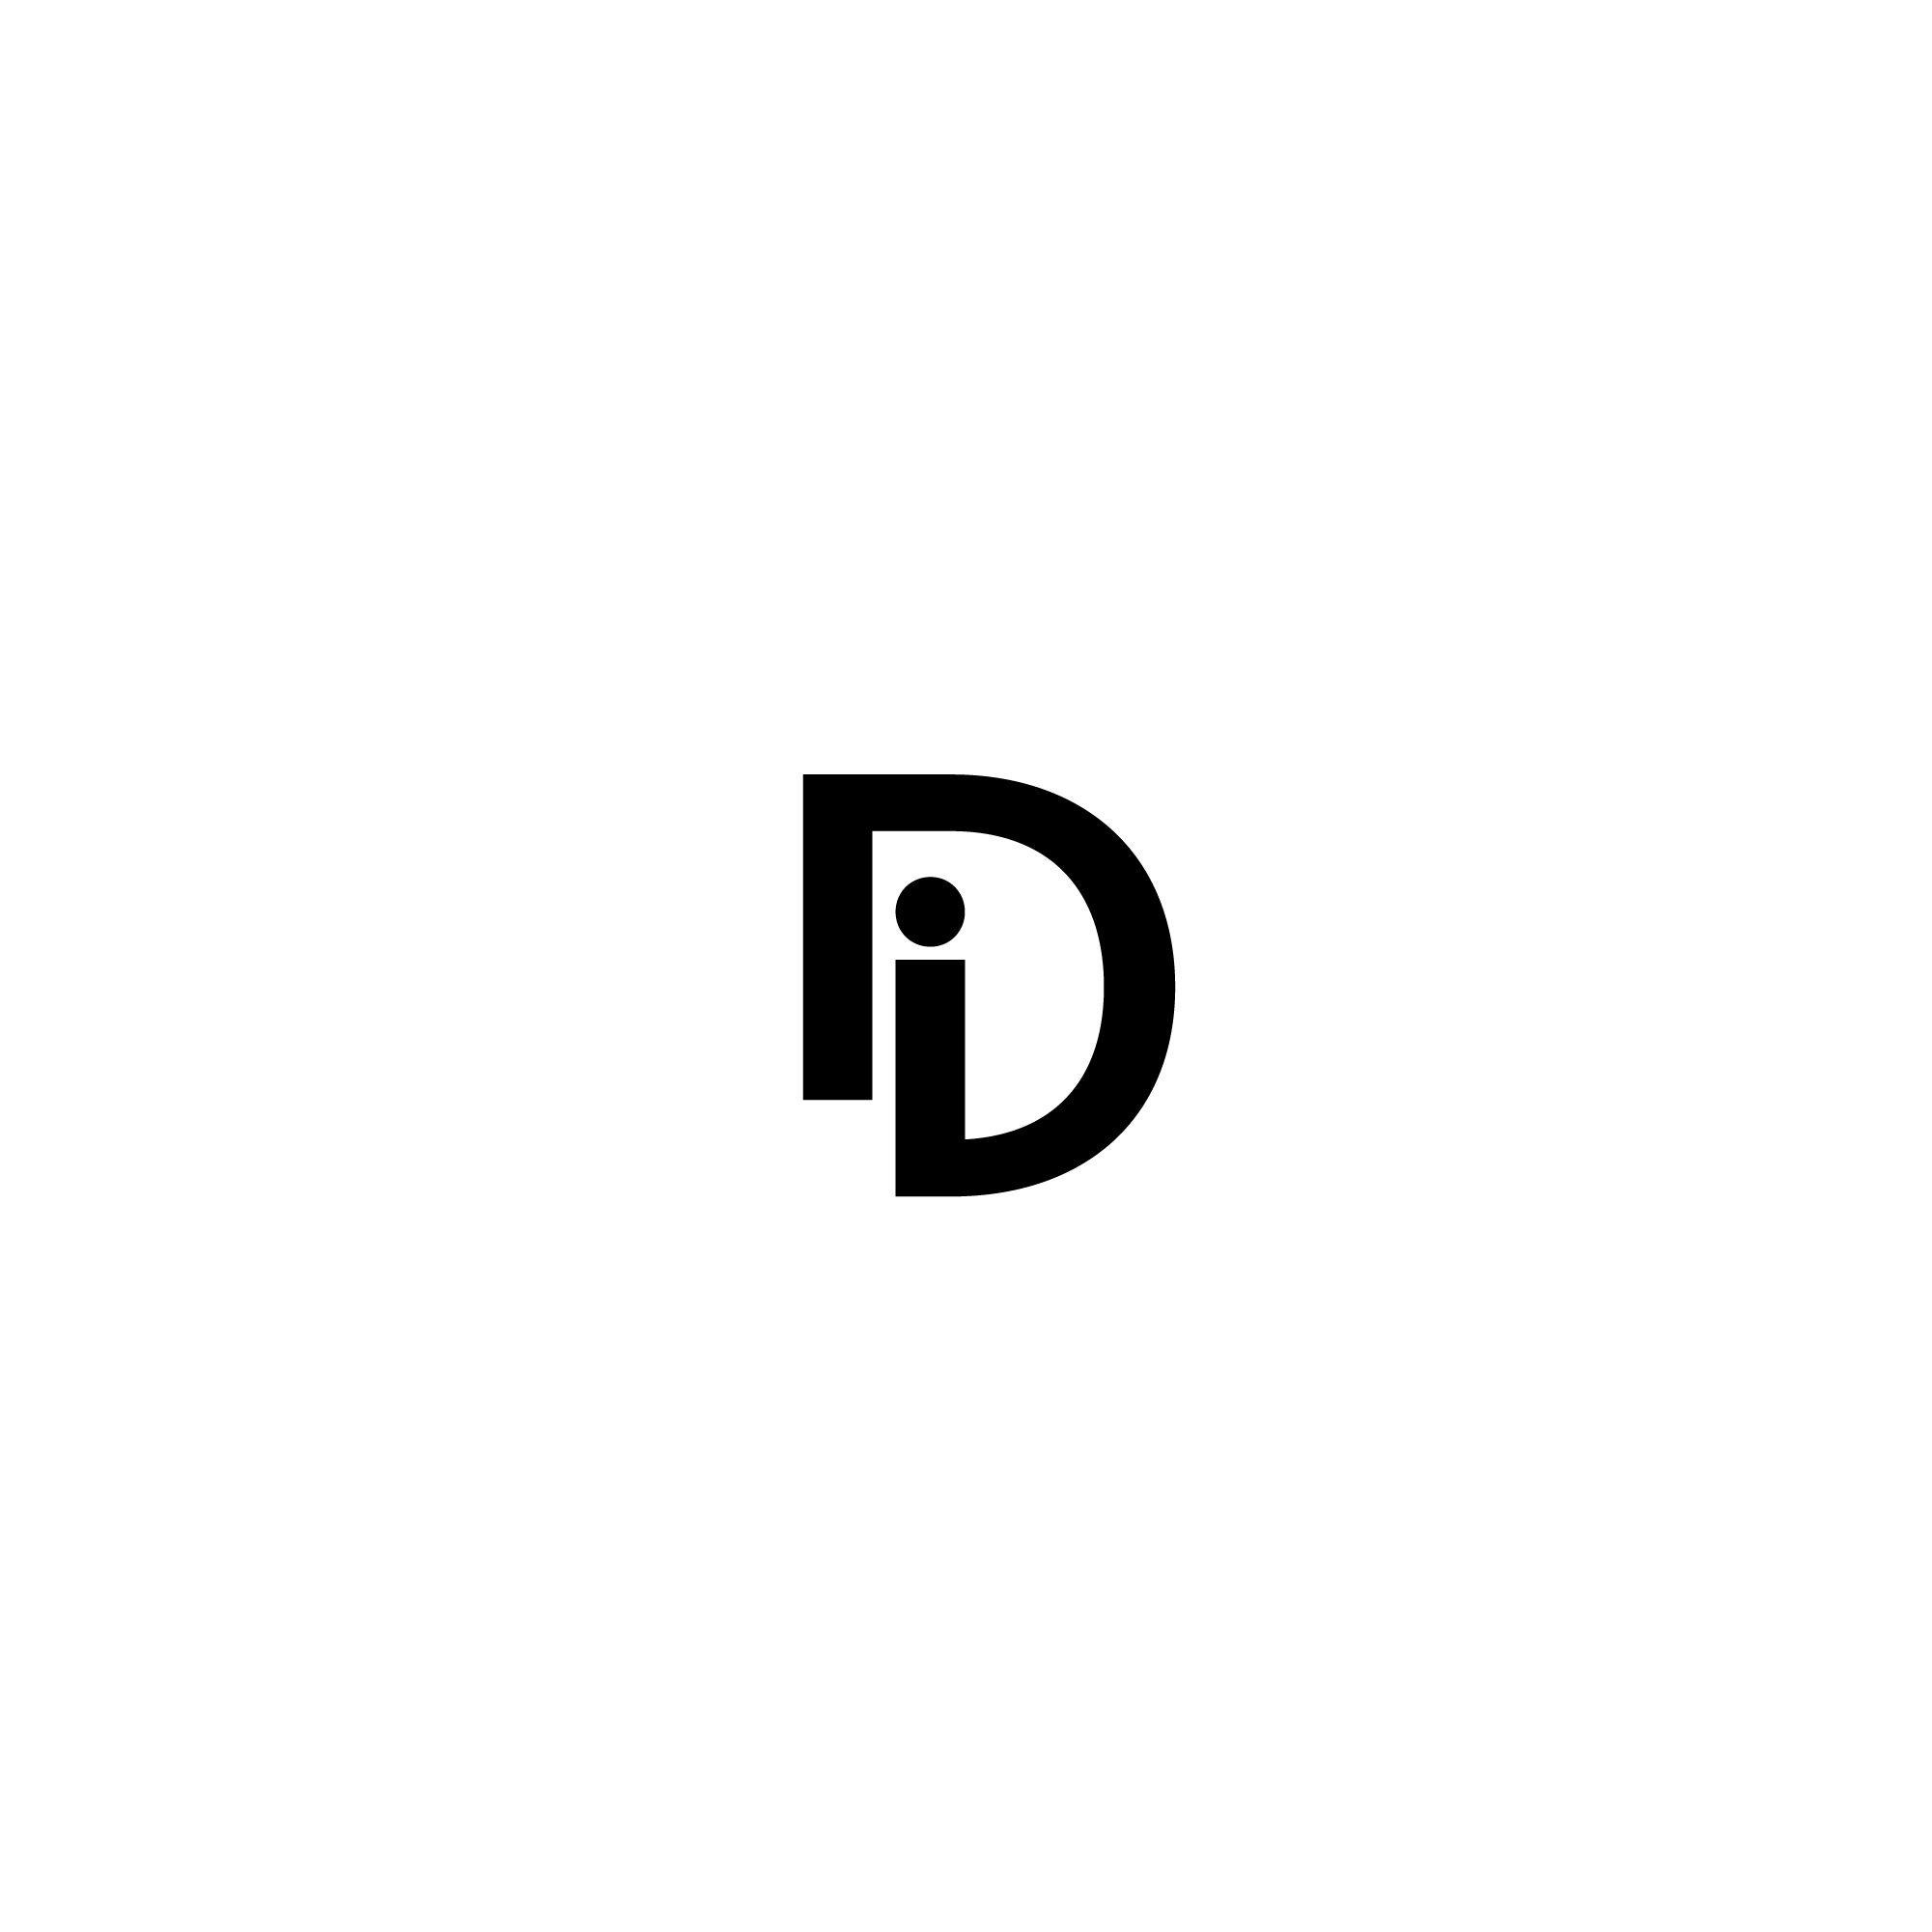 Daniel Iloh Advertising Agency Logo